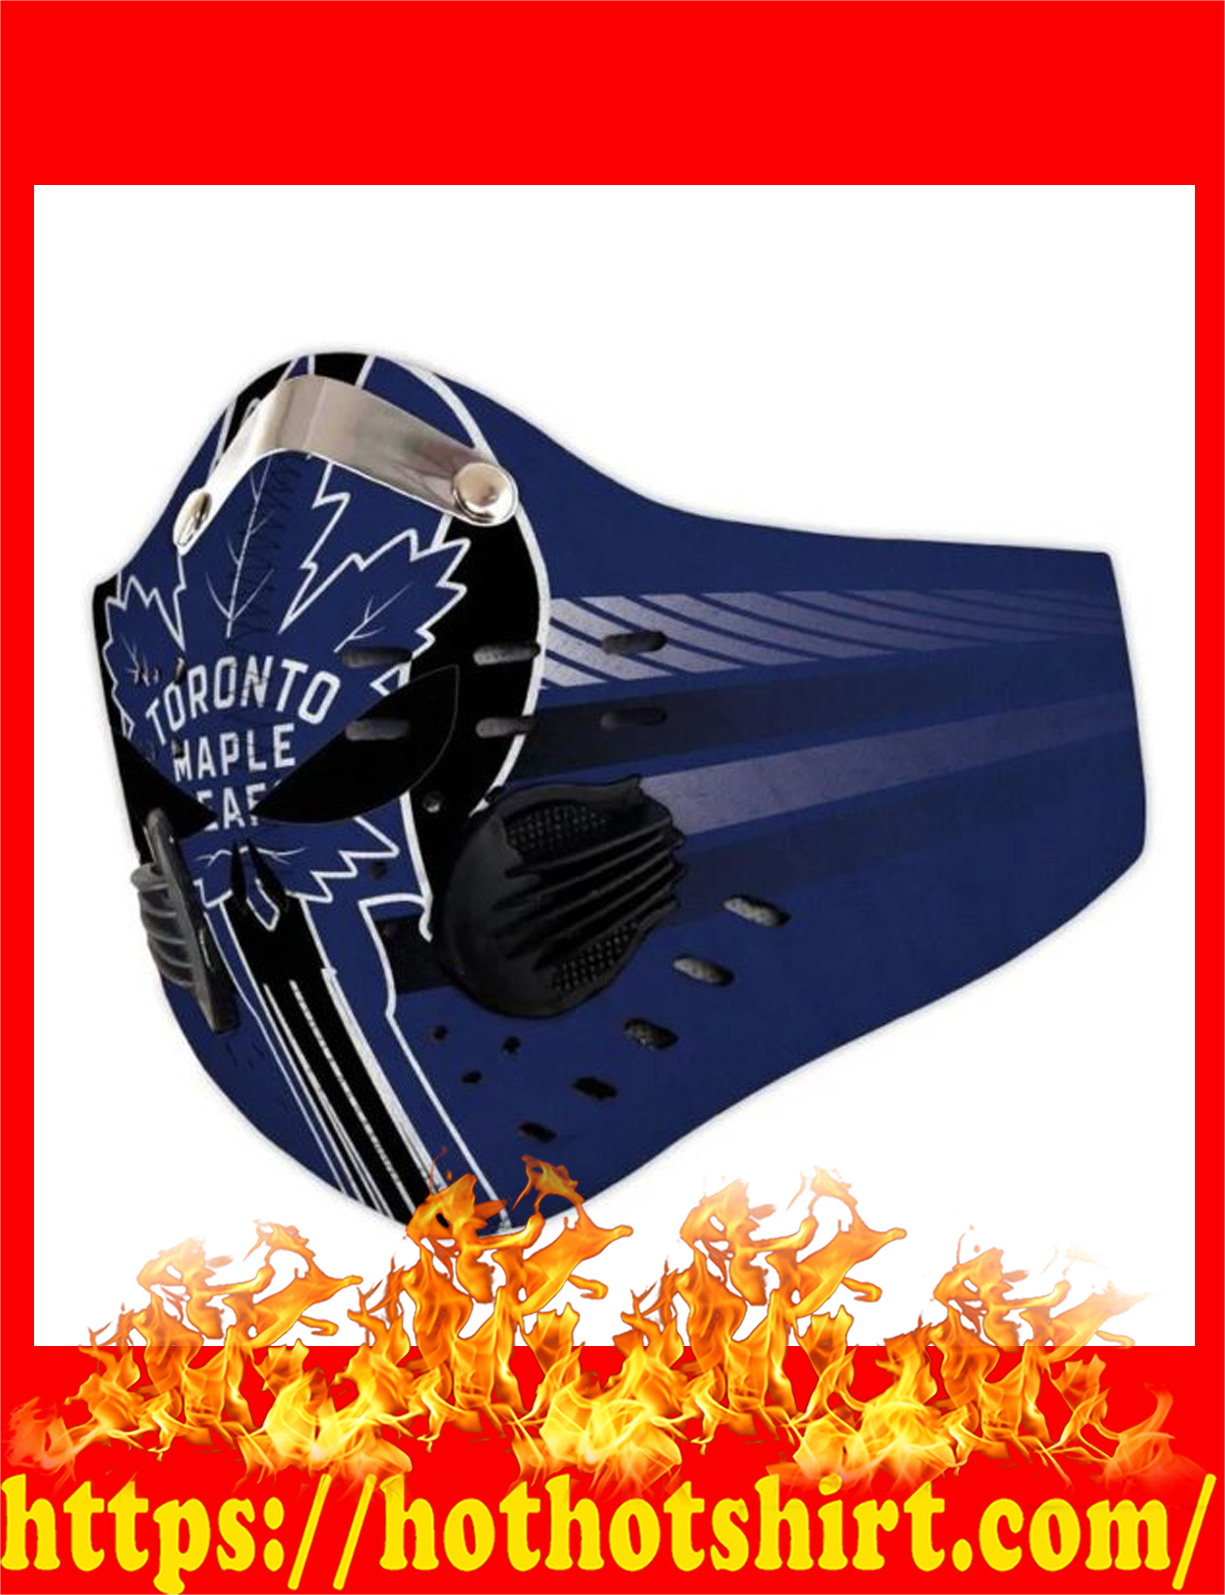 Toronto maple leafs punisher skull filter face mask - detail